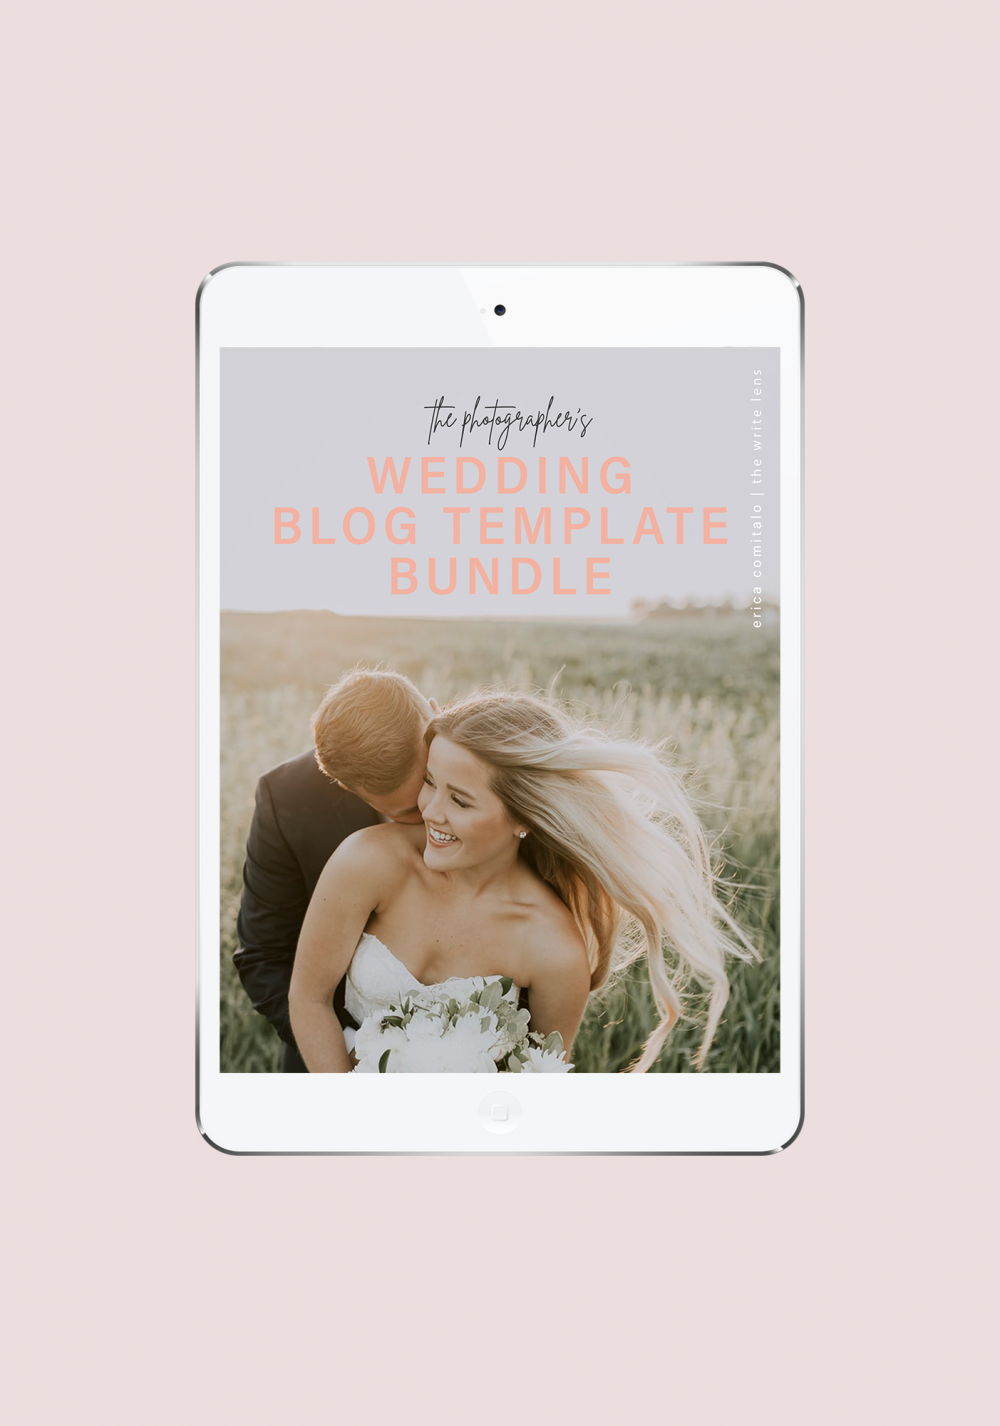 The Wedding Blog Template Pack Image 1